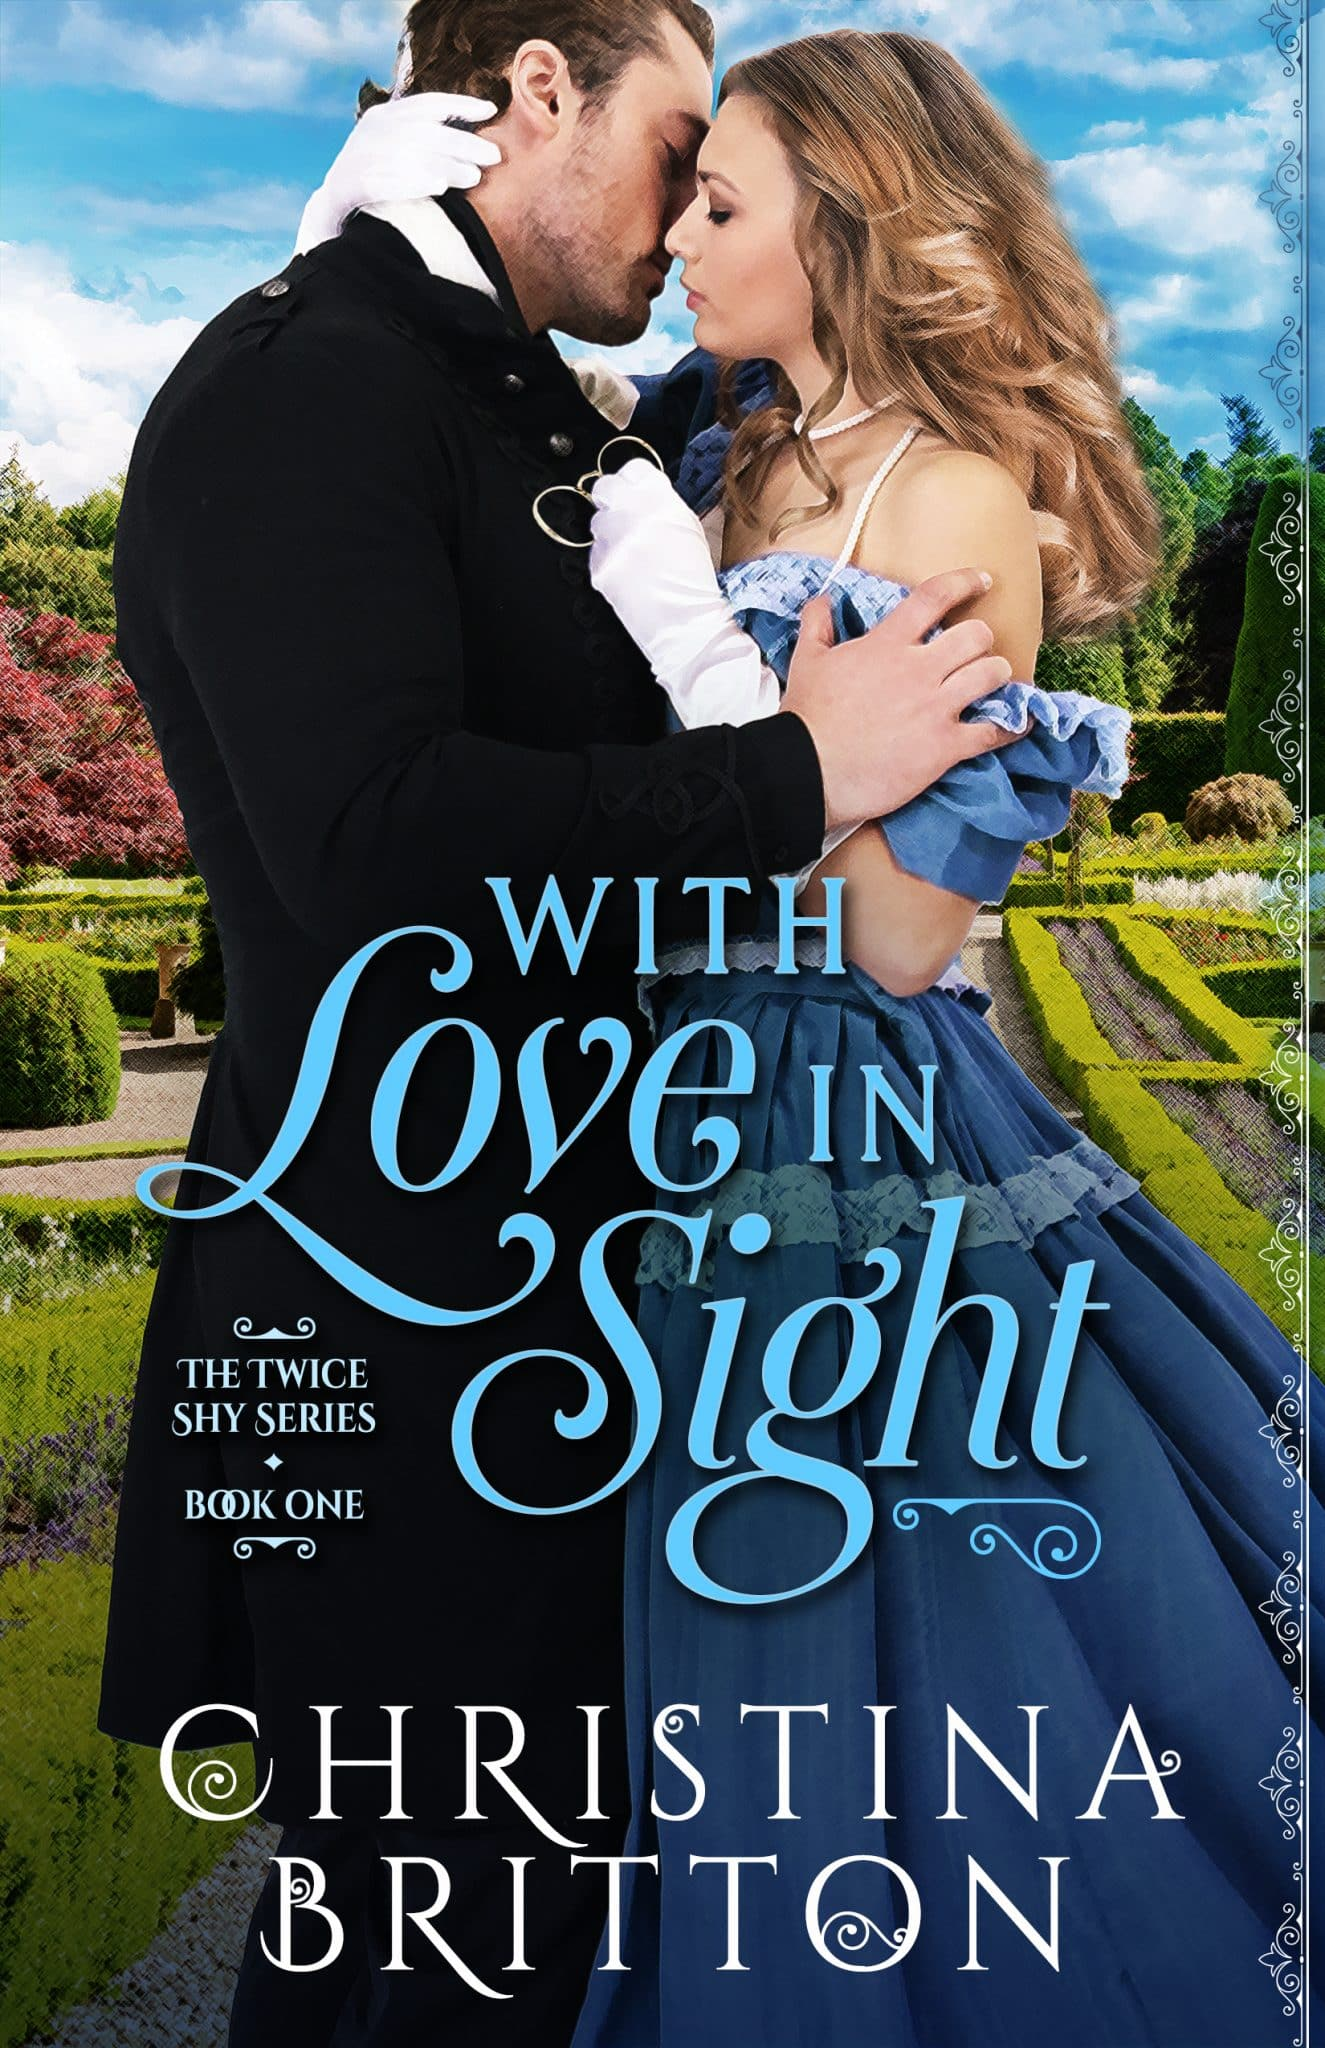 Review of With Love In Sight